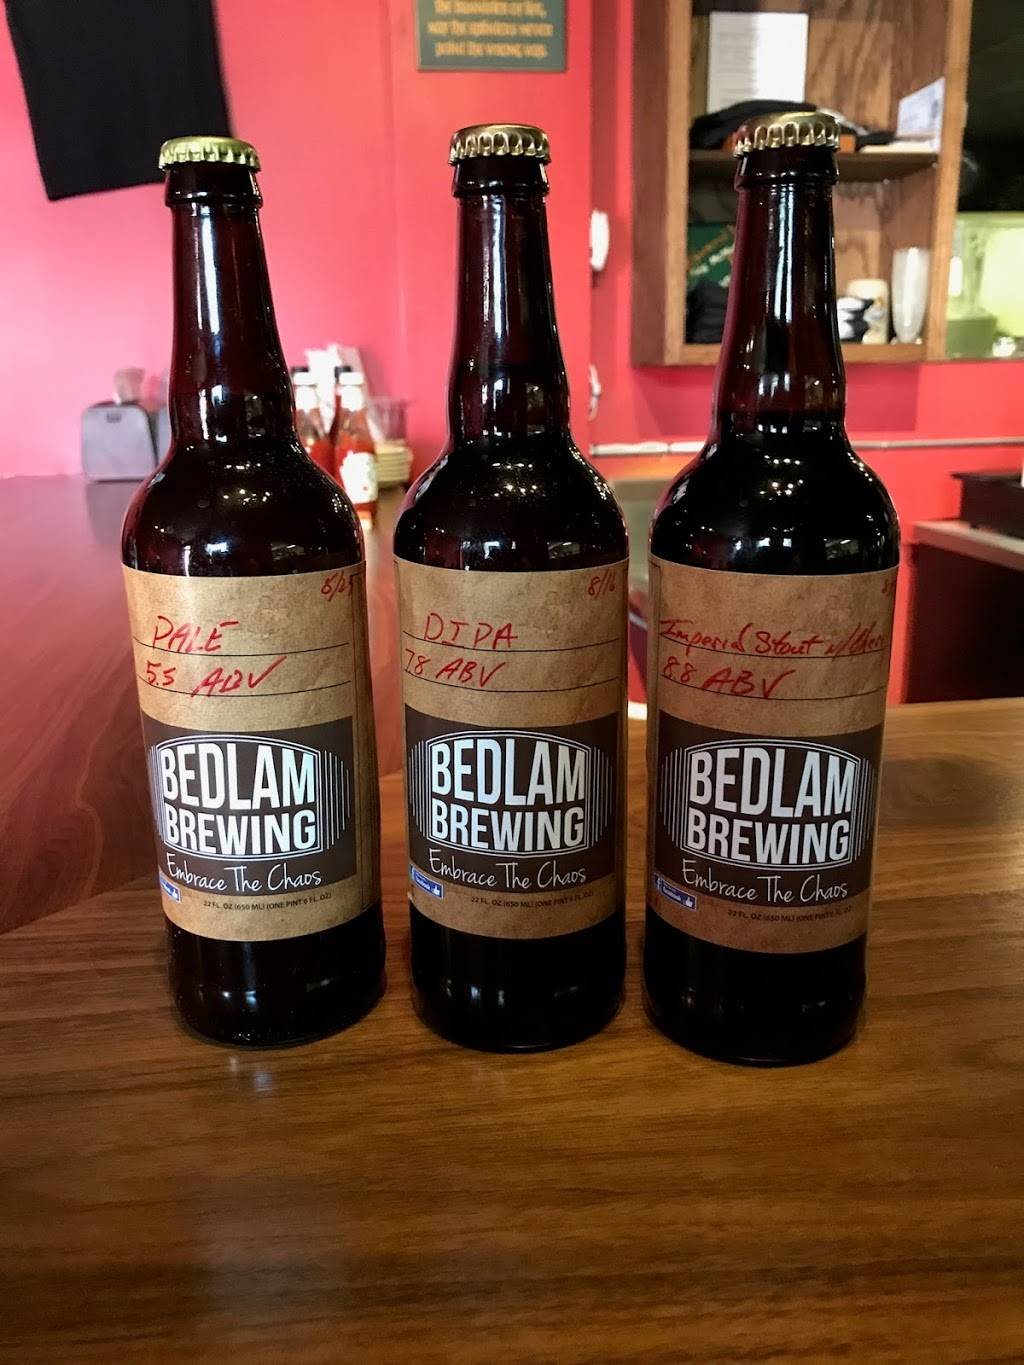 Bedlam Brewing | restaurant | 2303 N Augusta St, Staunton, VA 24401, USA | 5404164634 OR +1 540-416-4634